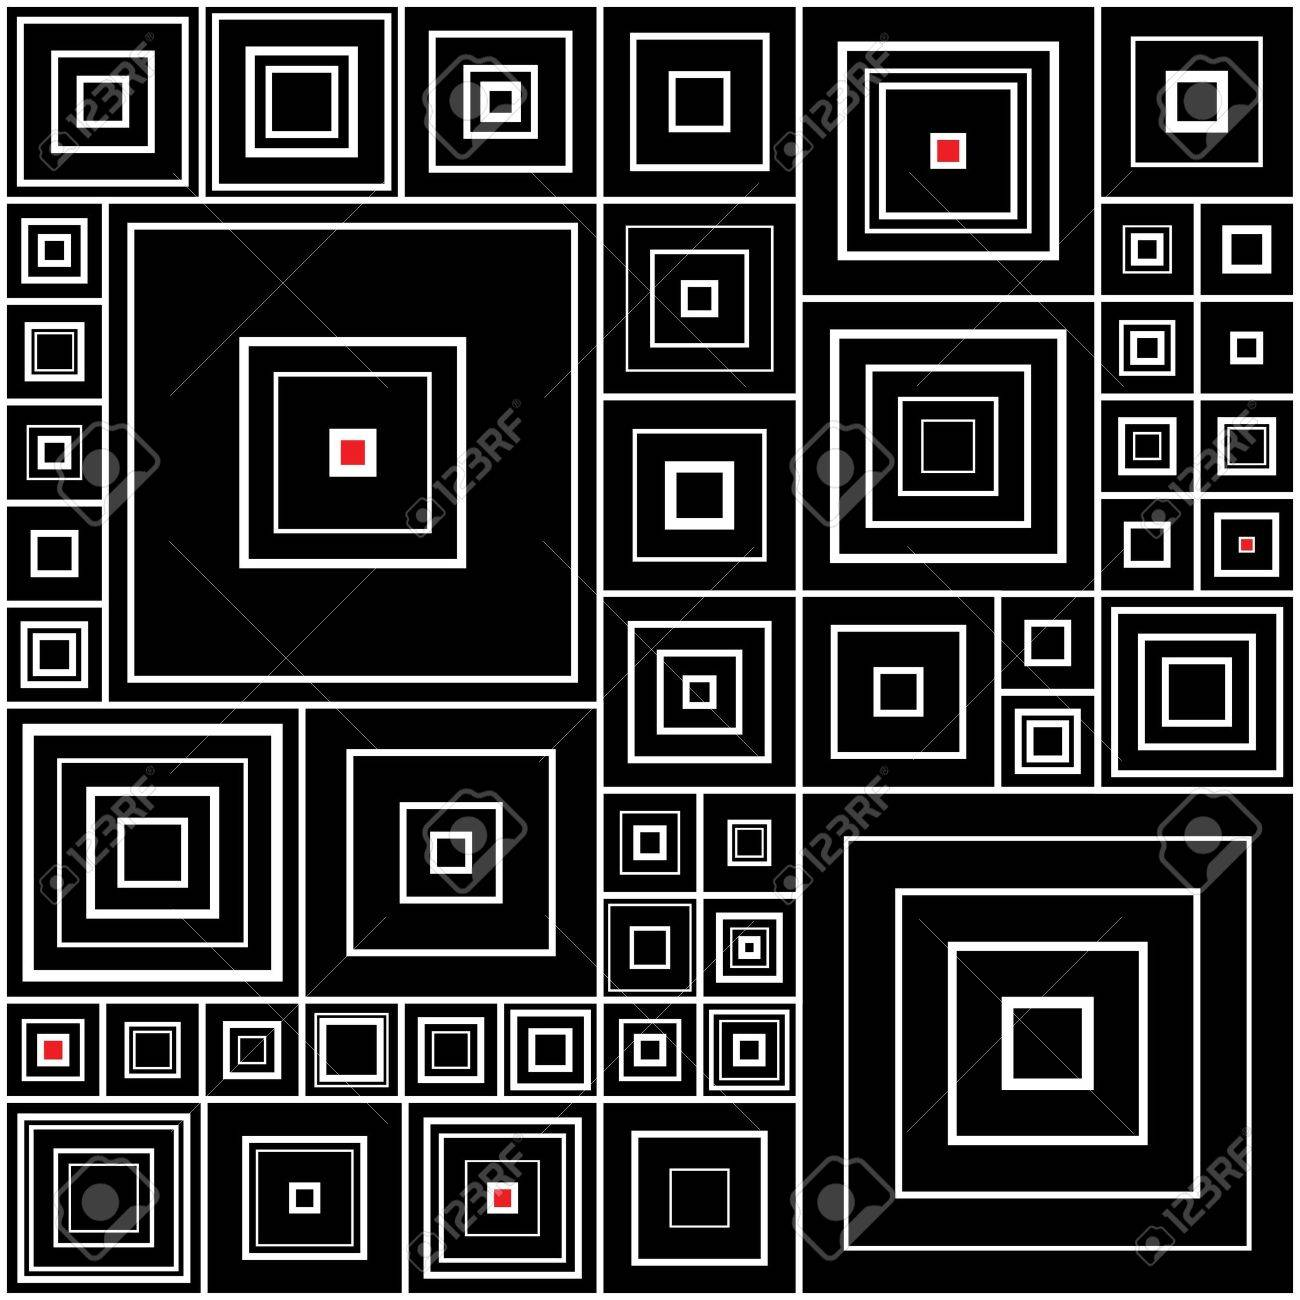 Pattern in black and white with red accents Stock Vector - 16308089